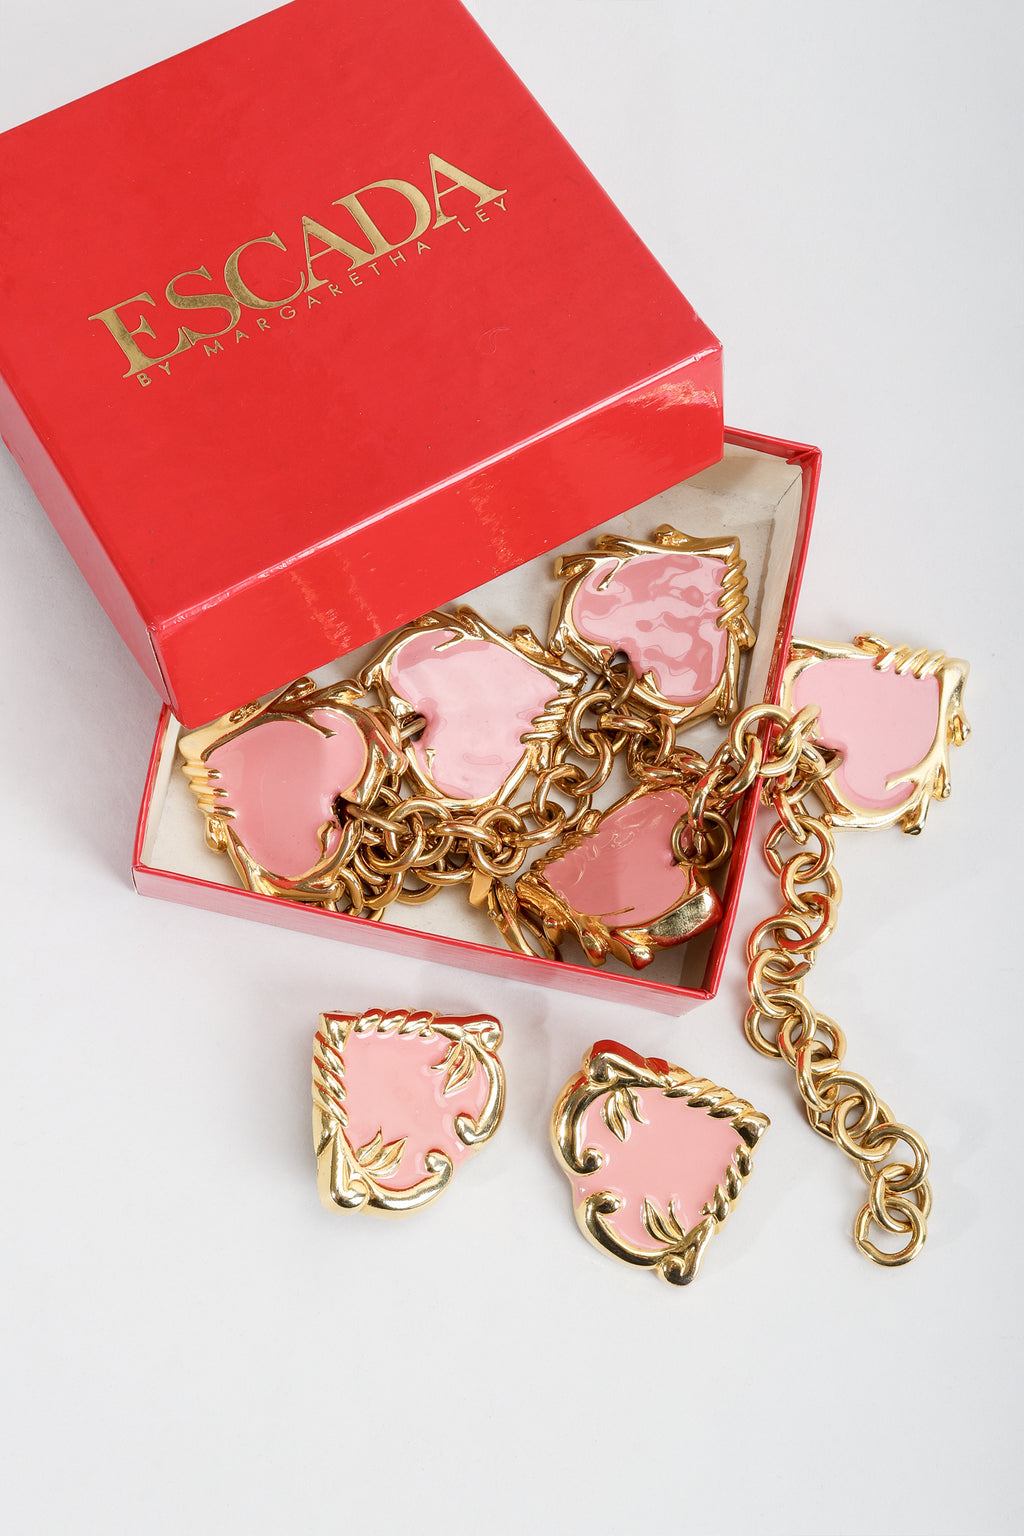 Vintage Escada Enamel Hearts Charm Necklace with box at Recess Los Angeles